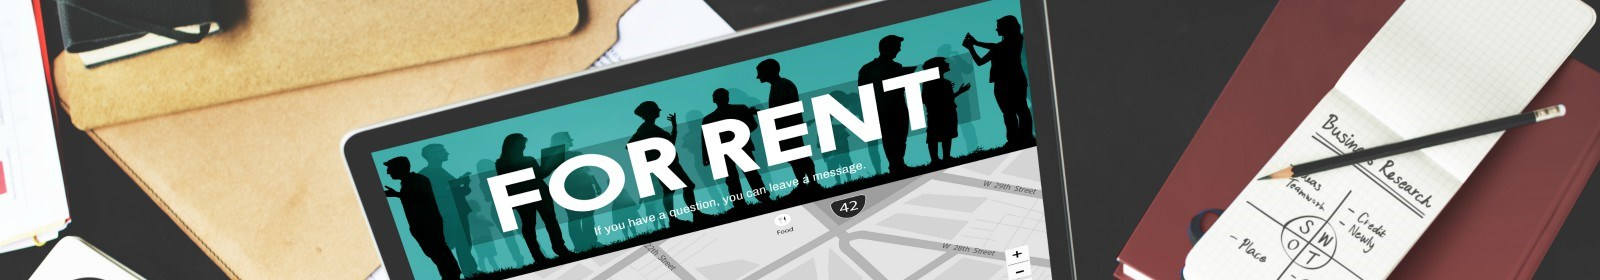 Rental laws and how they affect tenants and landlords